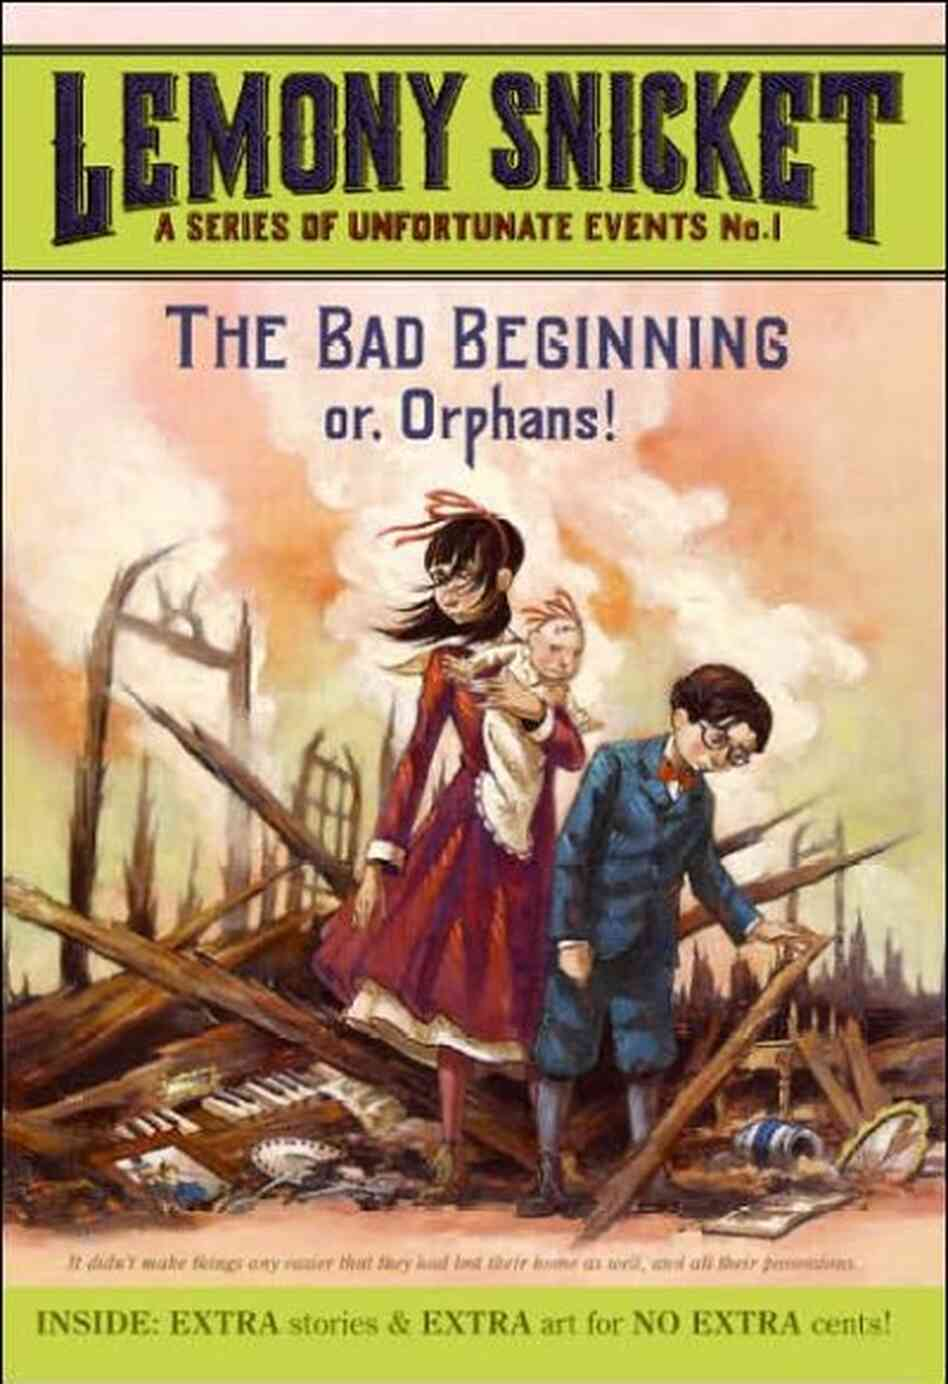 The Bad Beginning